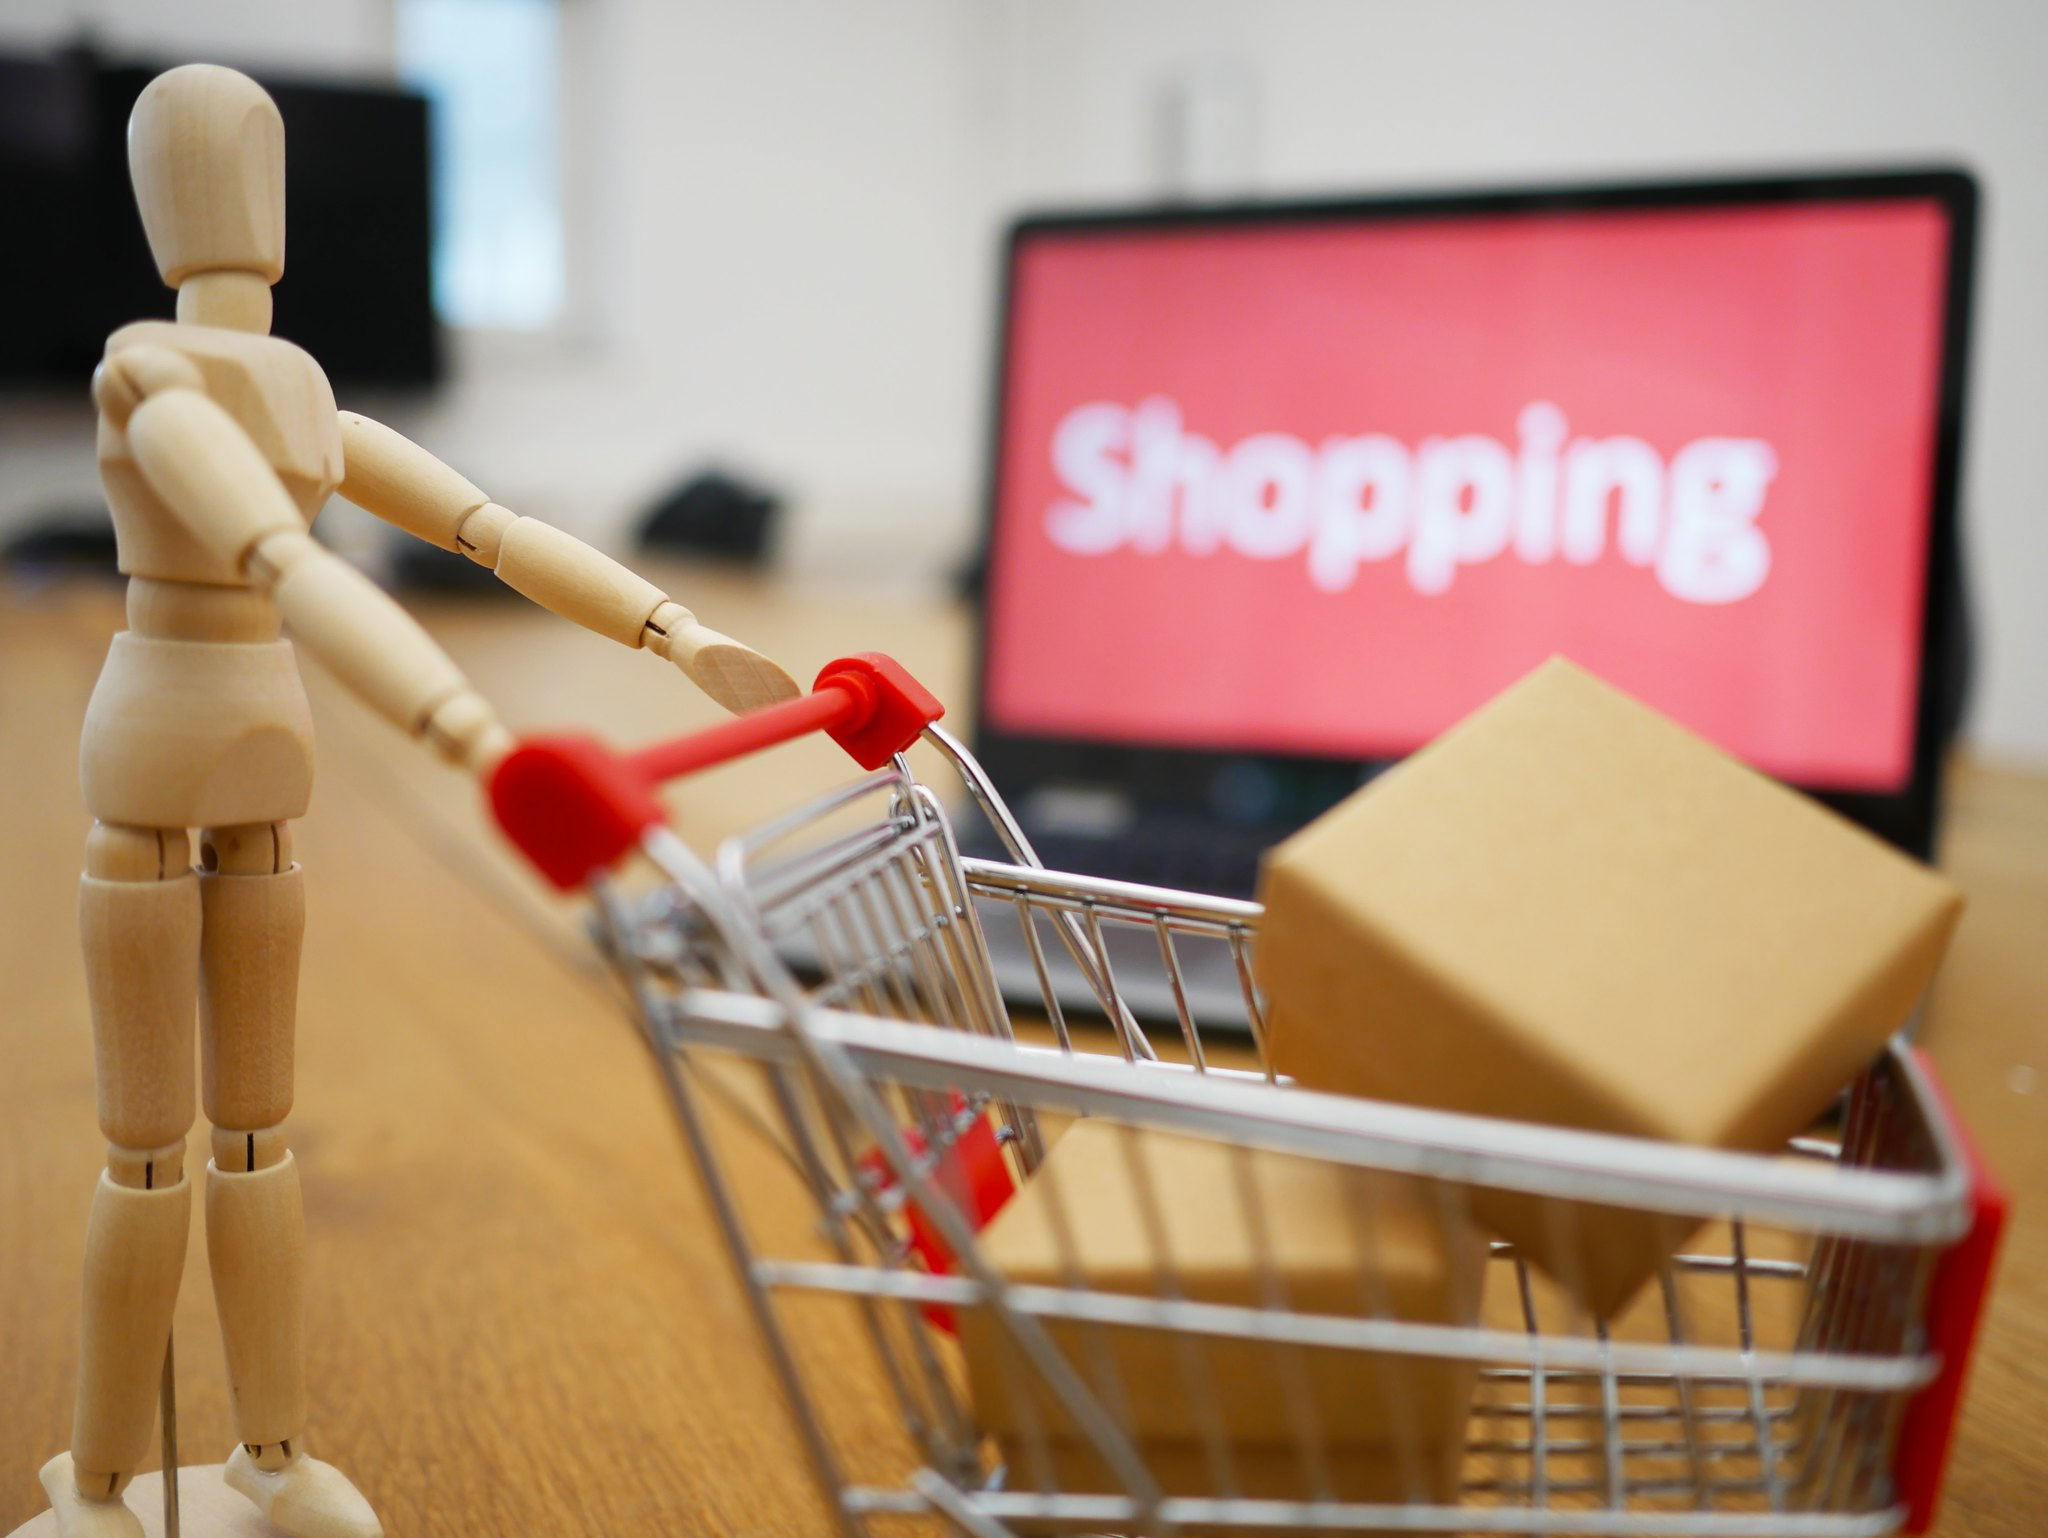 Figurine pushing a shopping trolley with laptop in background